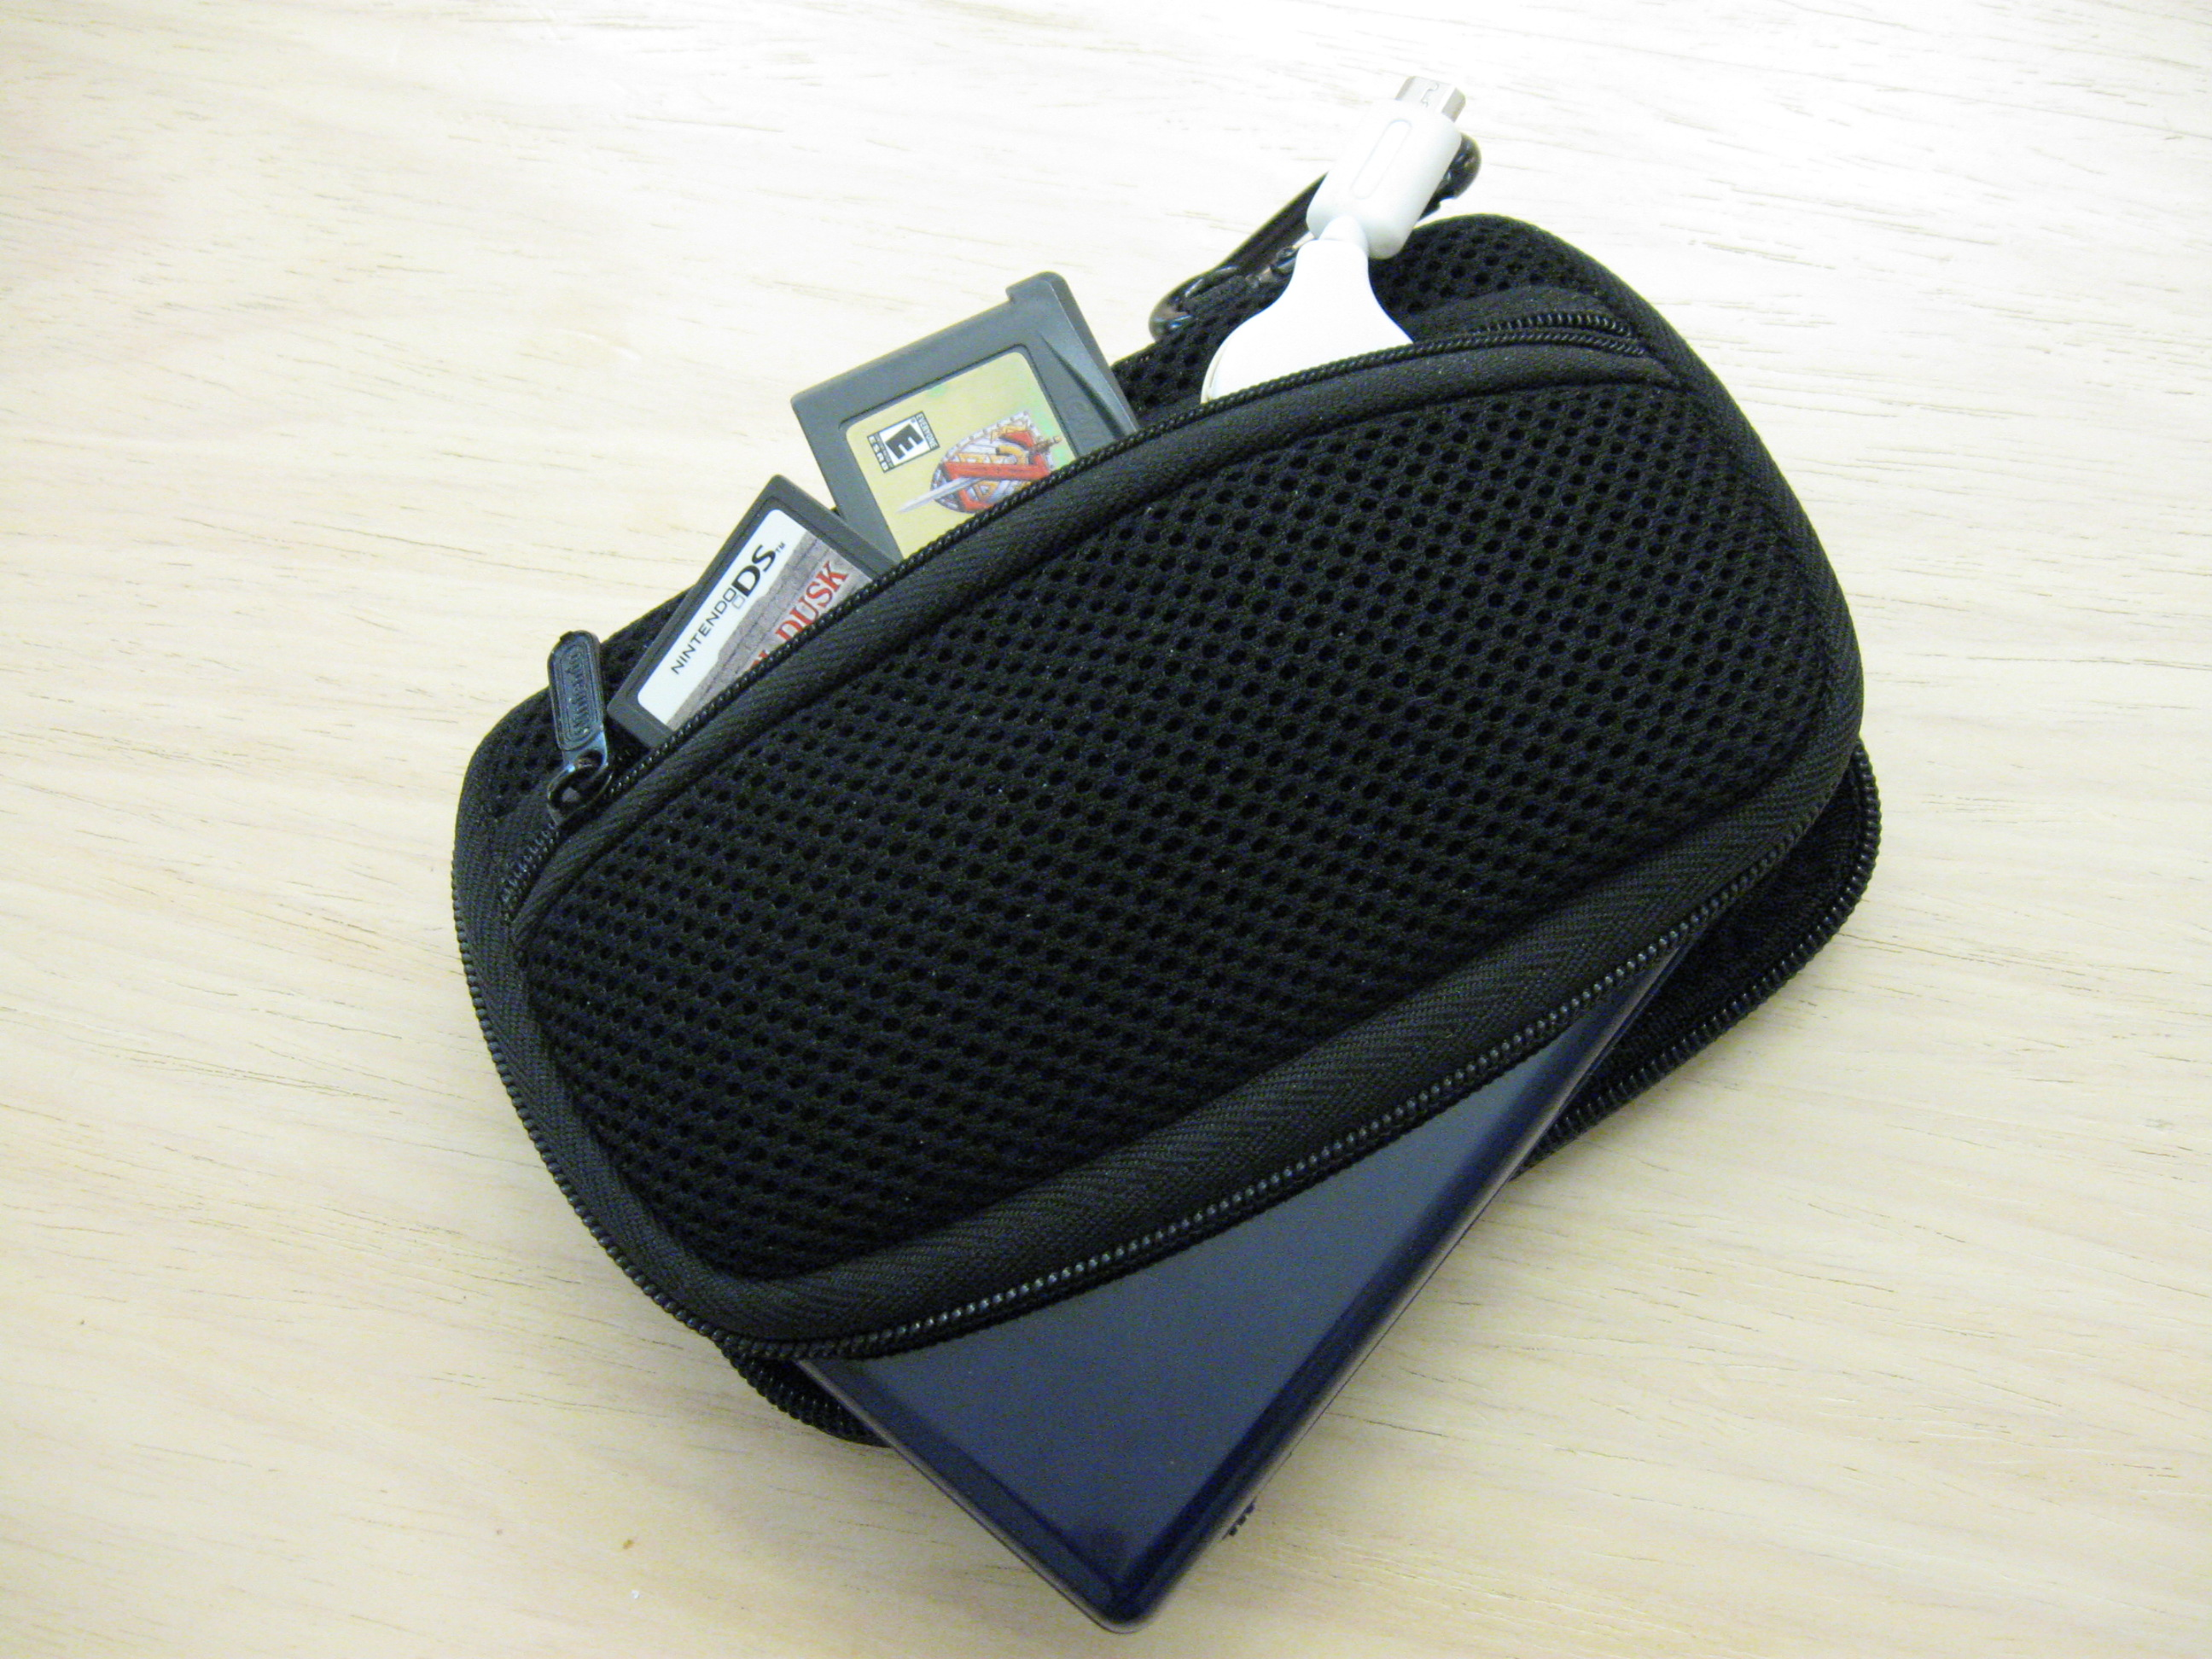 NDSL80 DS Lite carrying case